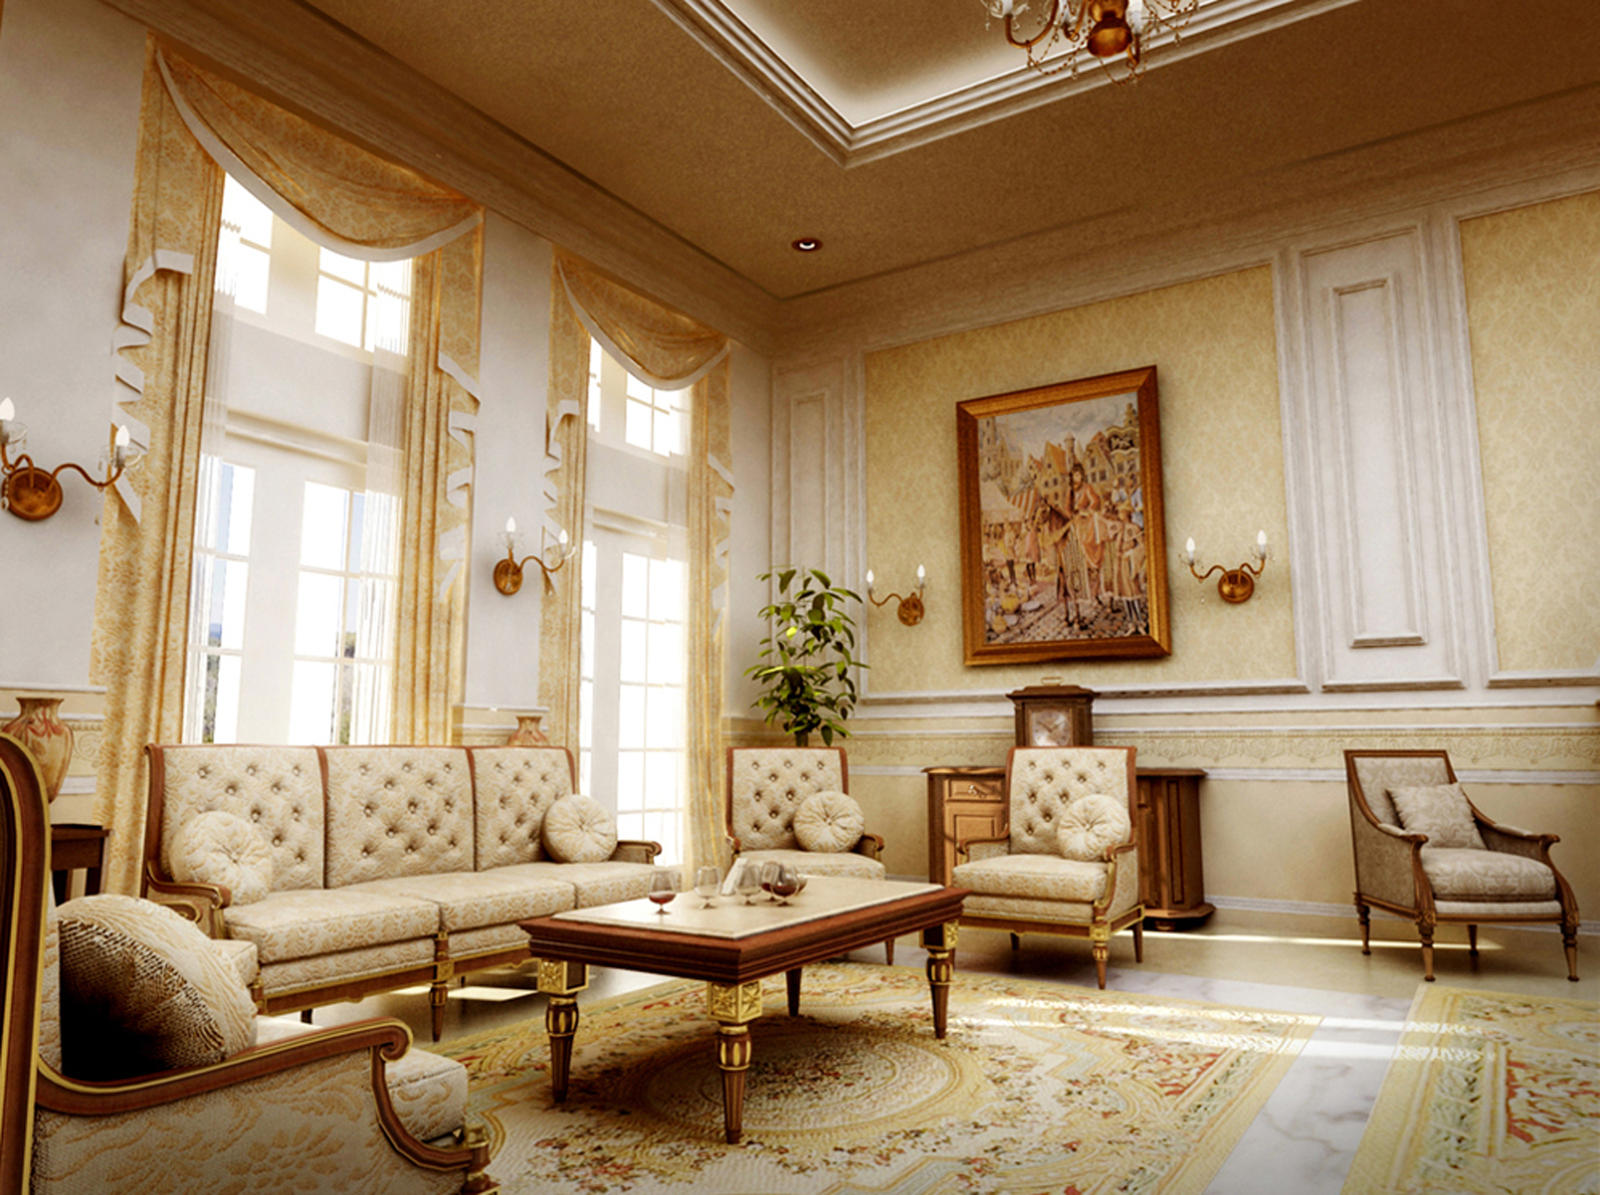 Classic interior by aboushady81 on deviantart for Classic interior house colors